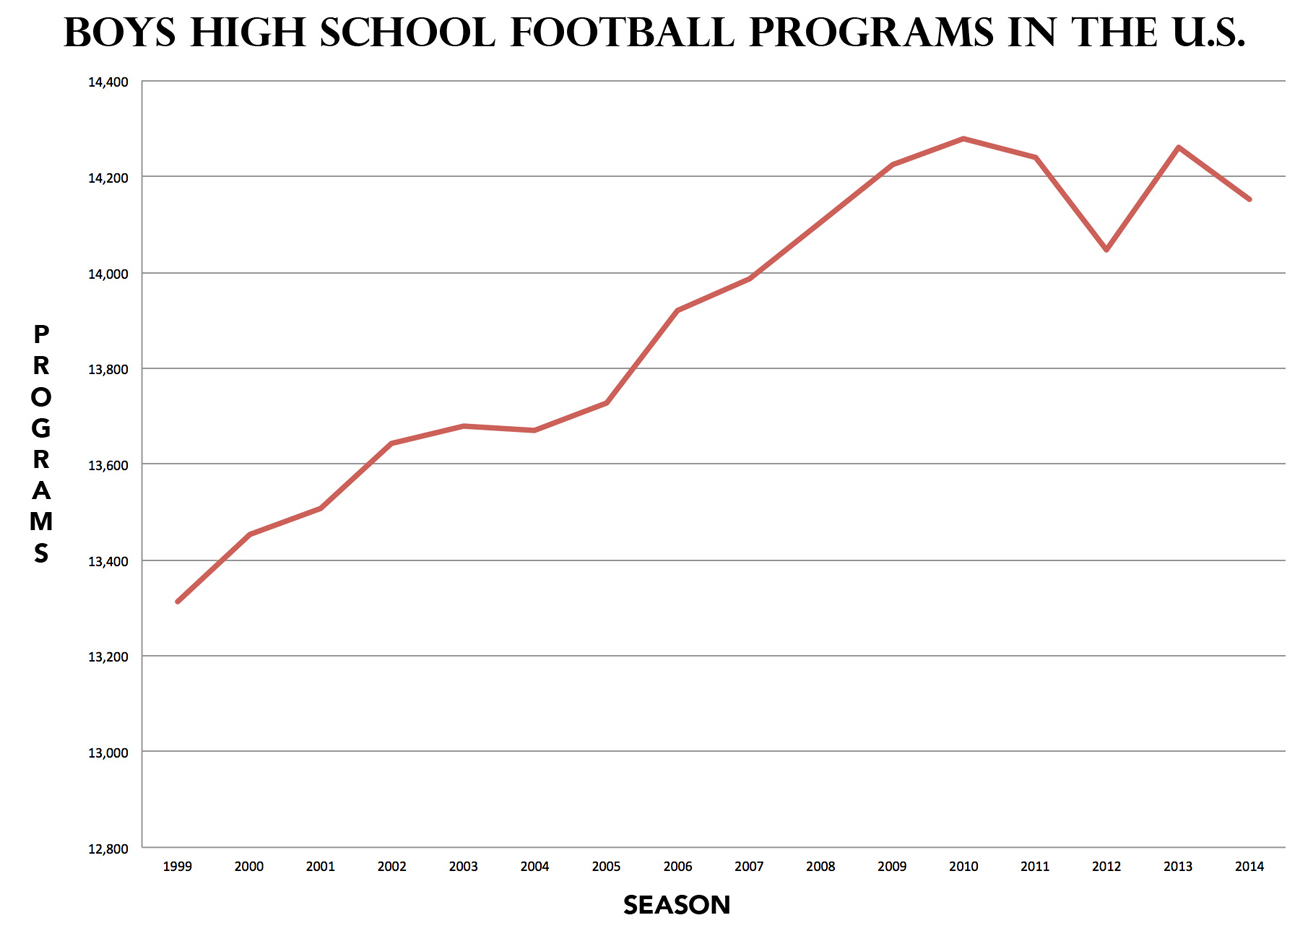 The number of high school football programs rose steadily for a decade from 1999 but has wavered in recent years.